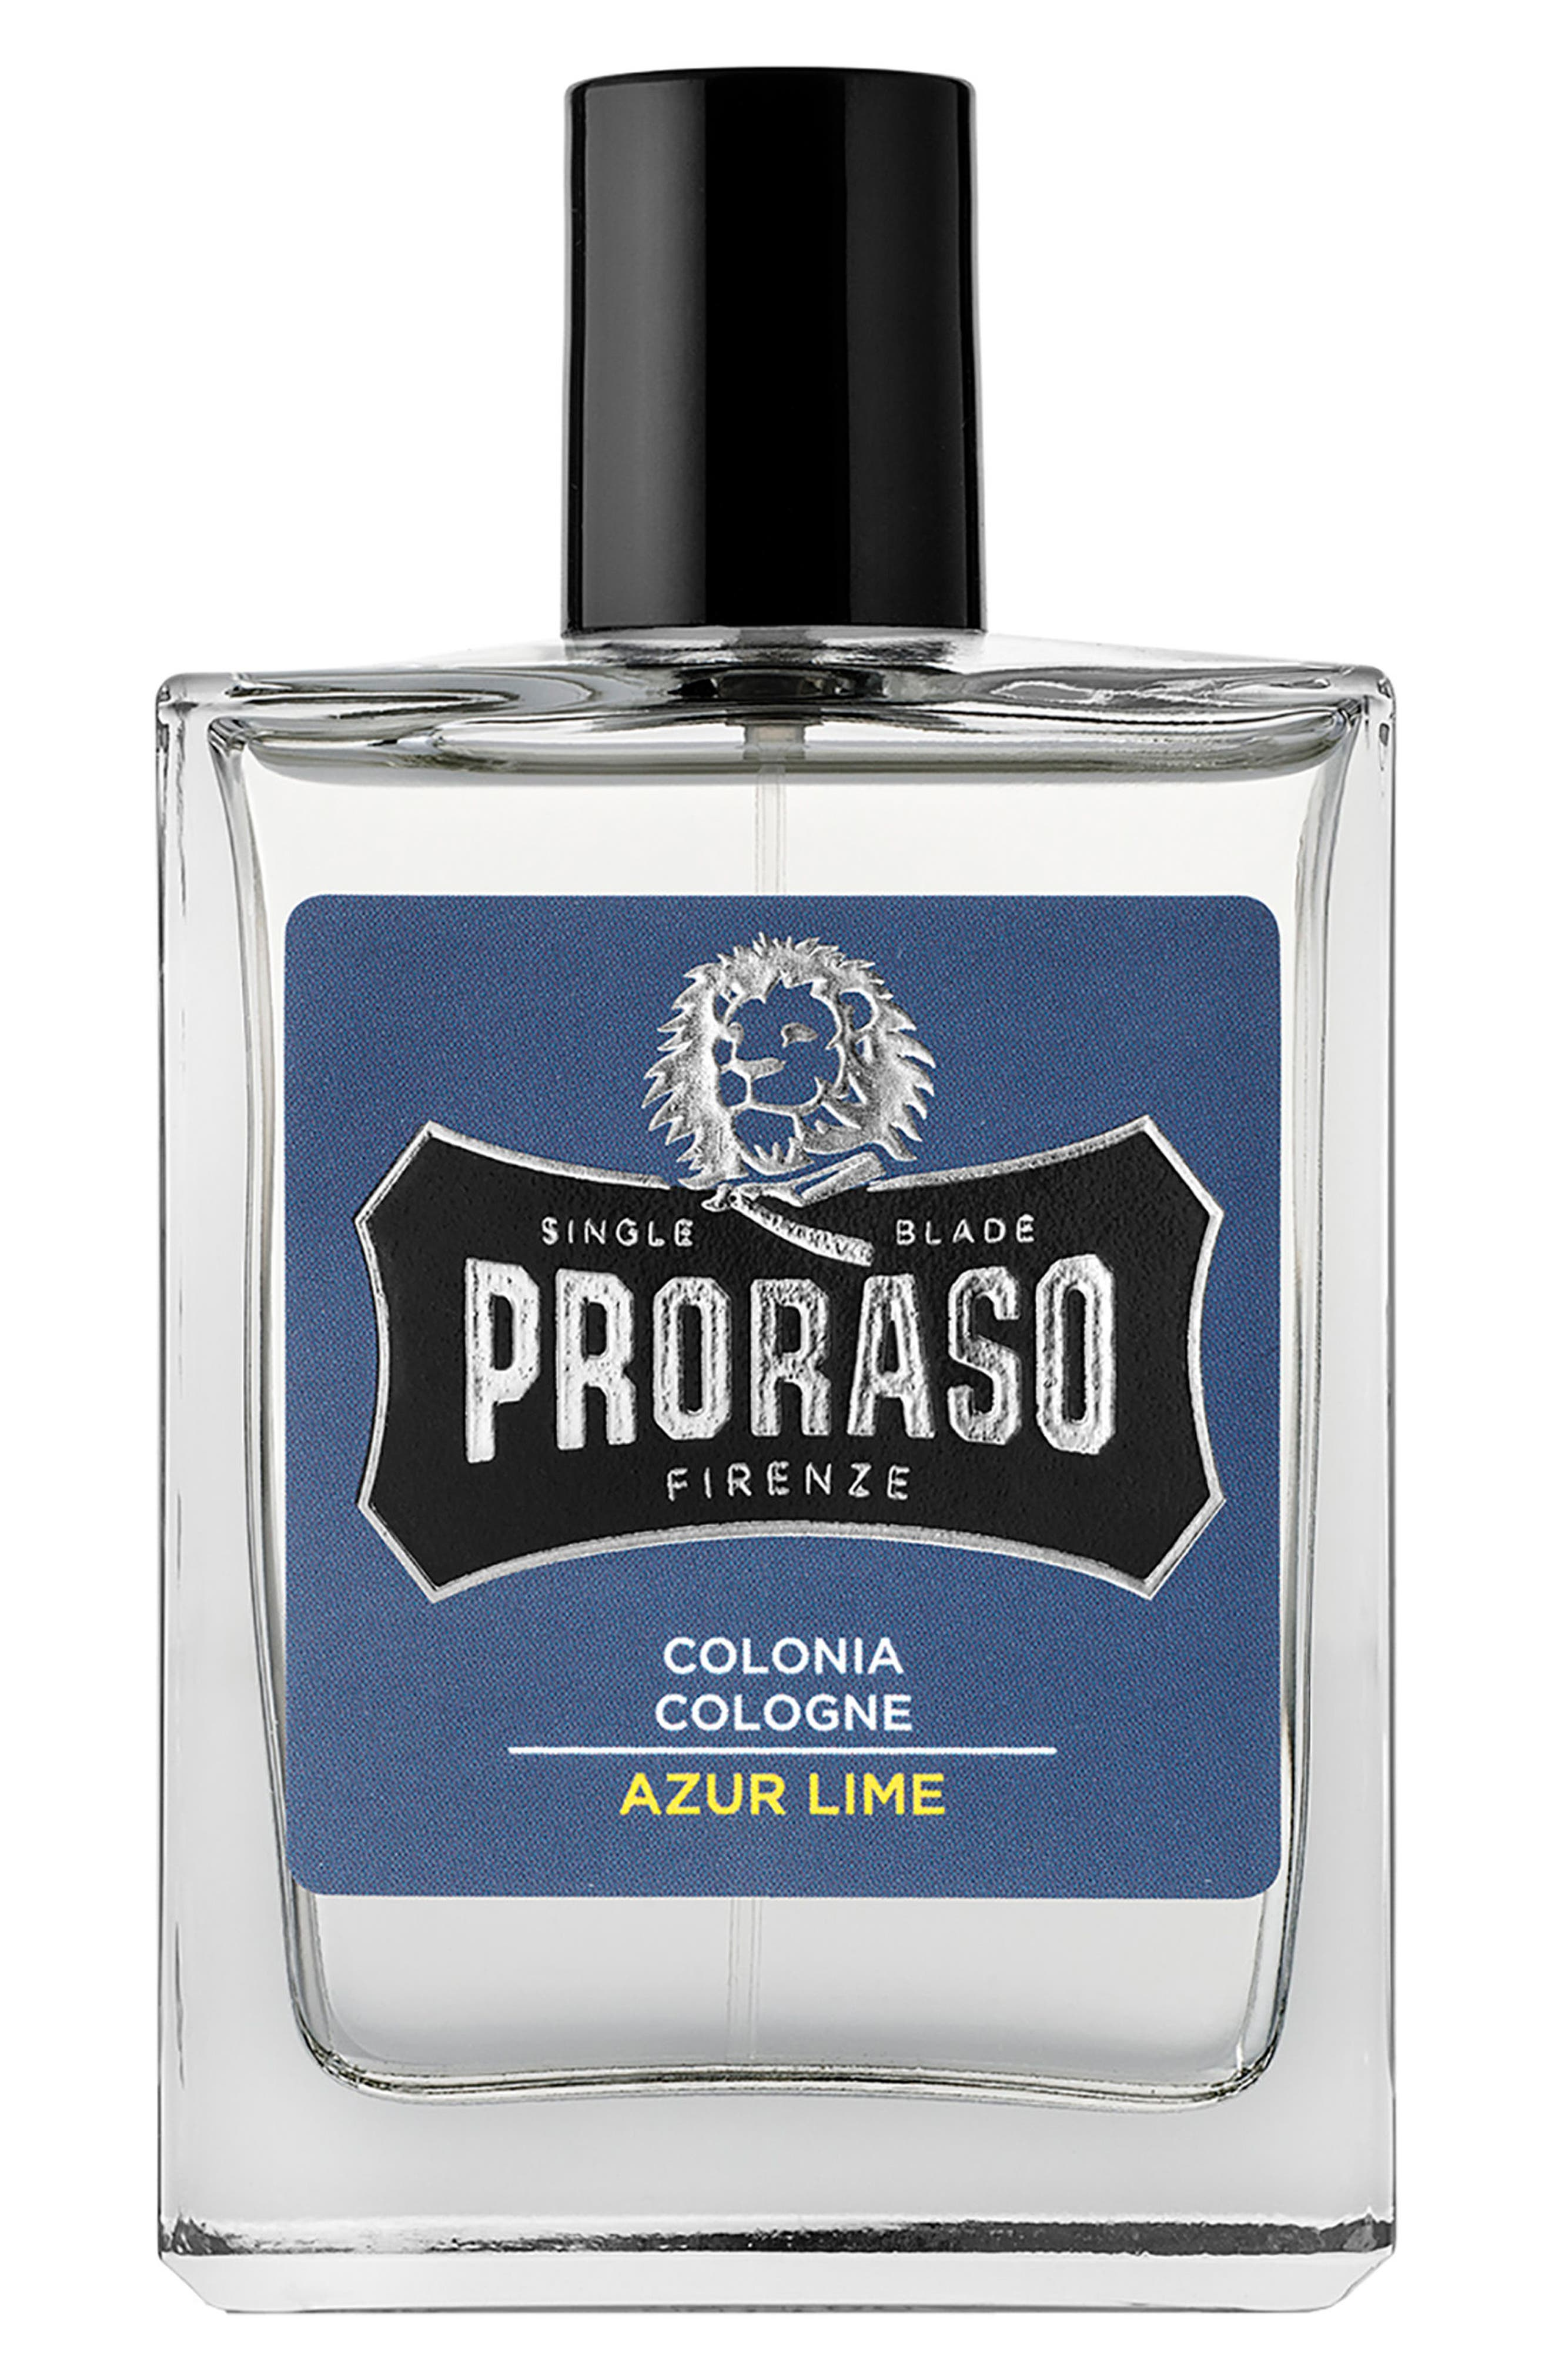 What it is: A cologne that makes the perfect finishing touch to the grooming ritual. Fragrance story: Azur Lime features the intense freshness of lemon and orange enriched with mint leaves. Juniper berries introduce a surprisingly creamy richness with hints of musk, wood and patchouli, leaving the skin and your senses feeling intensely refreshed. Style Name: Proraso Men\\\'s Grooming Azur Lime Cologne. Style Number: 5598513. Available in stores.